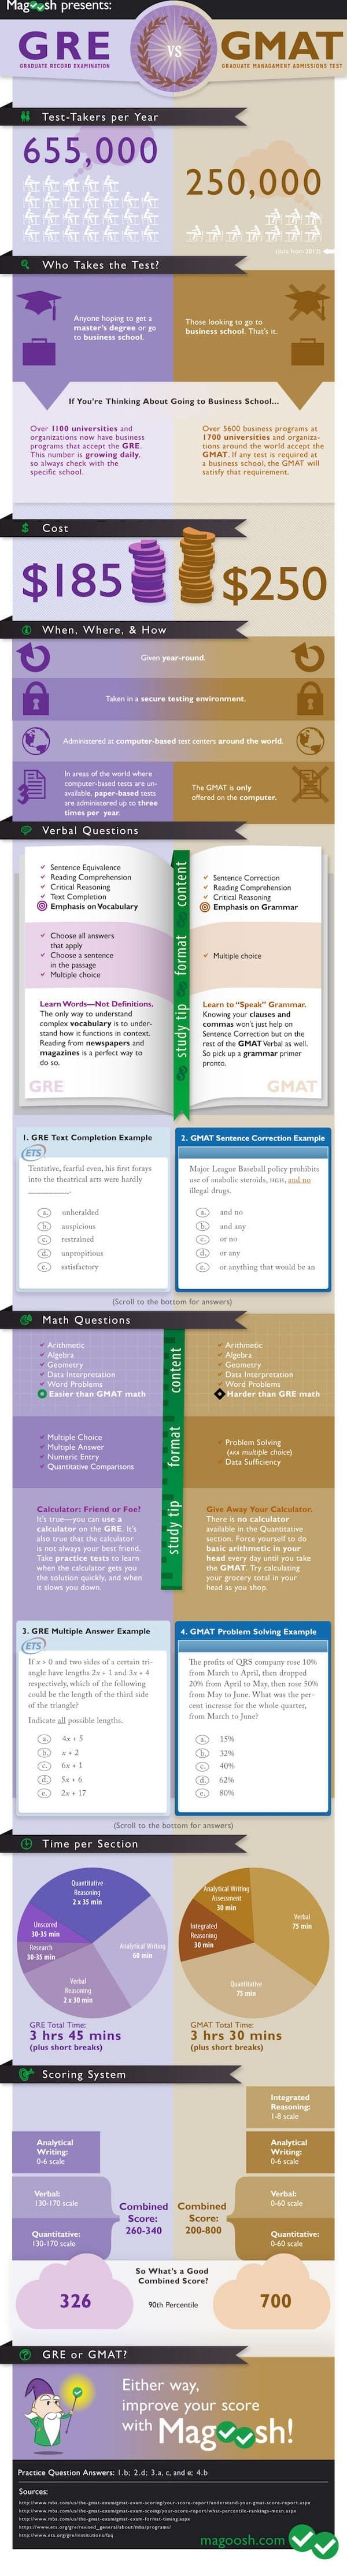 GMAT vs GRE (and Does it Matter for Business School Admission?) | GreatGets.com